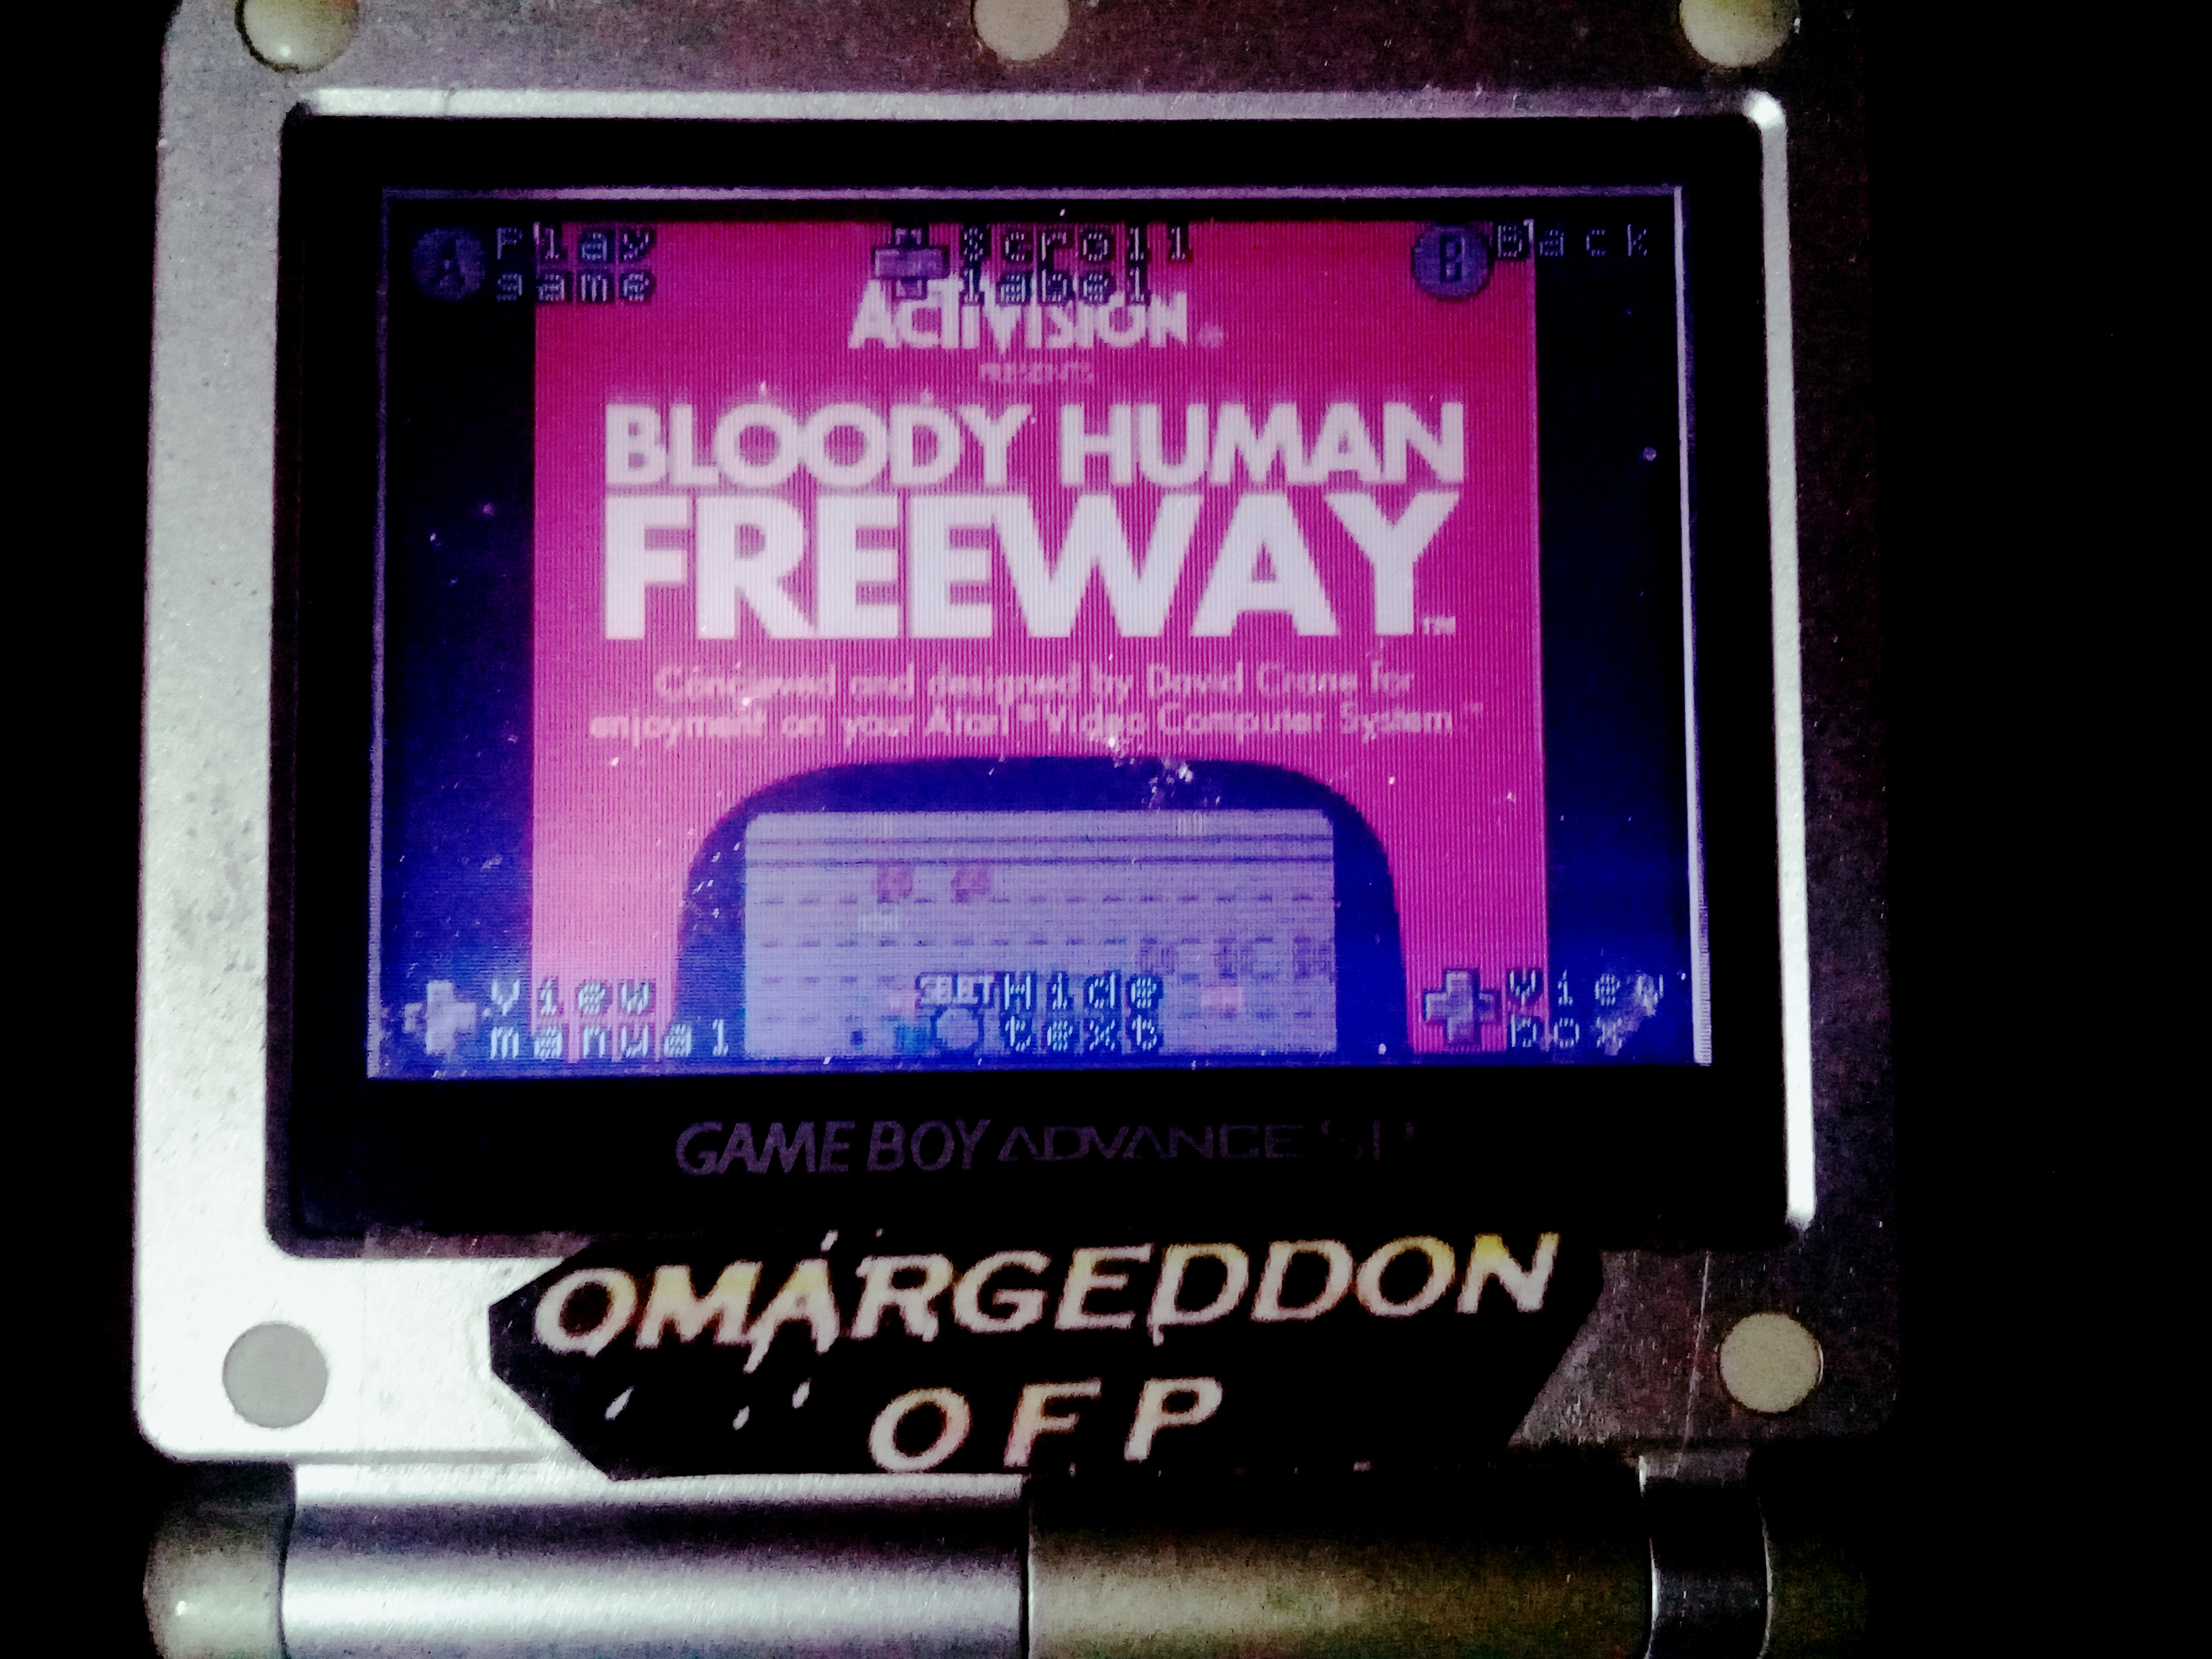 omargeddon: Activision Anthology: Bloody Human Freeway [Game 1] (GBA) 30 points on 2020-03-21 17:21:06